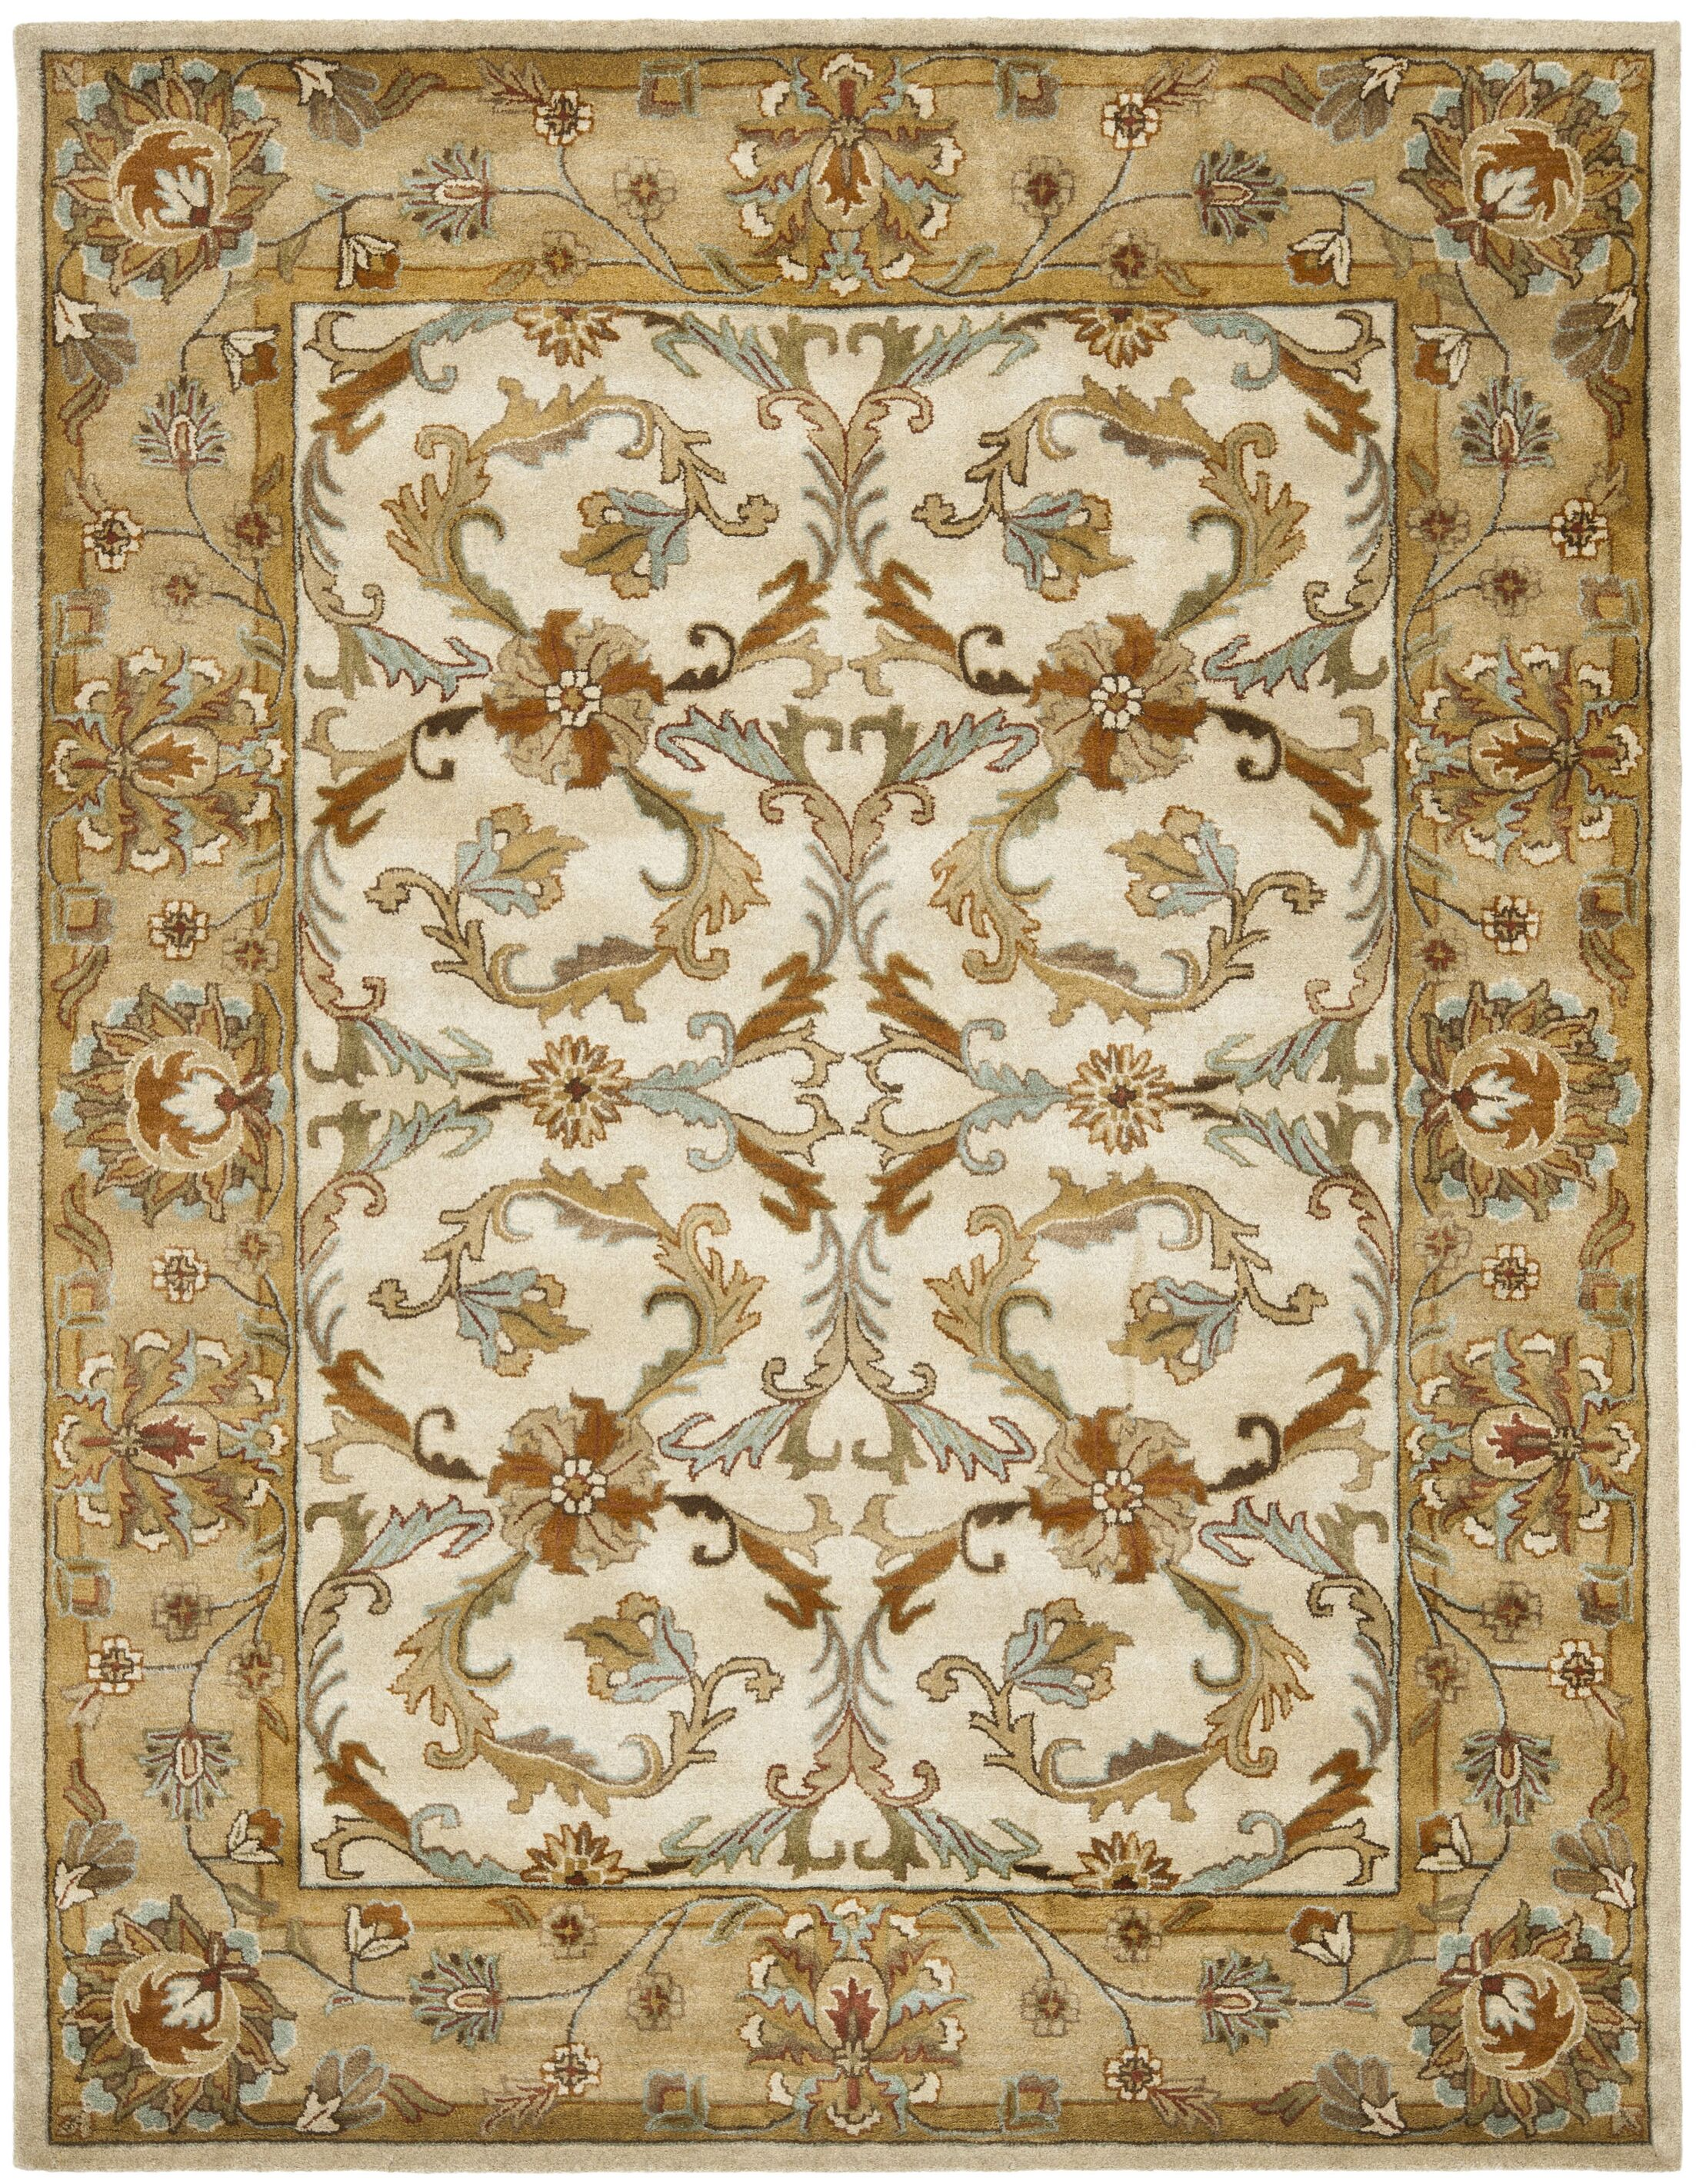 Cranmore Beige/Gold Area Rug Rug Size: Rectangle 9' x 12'